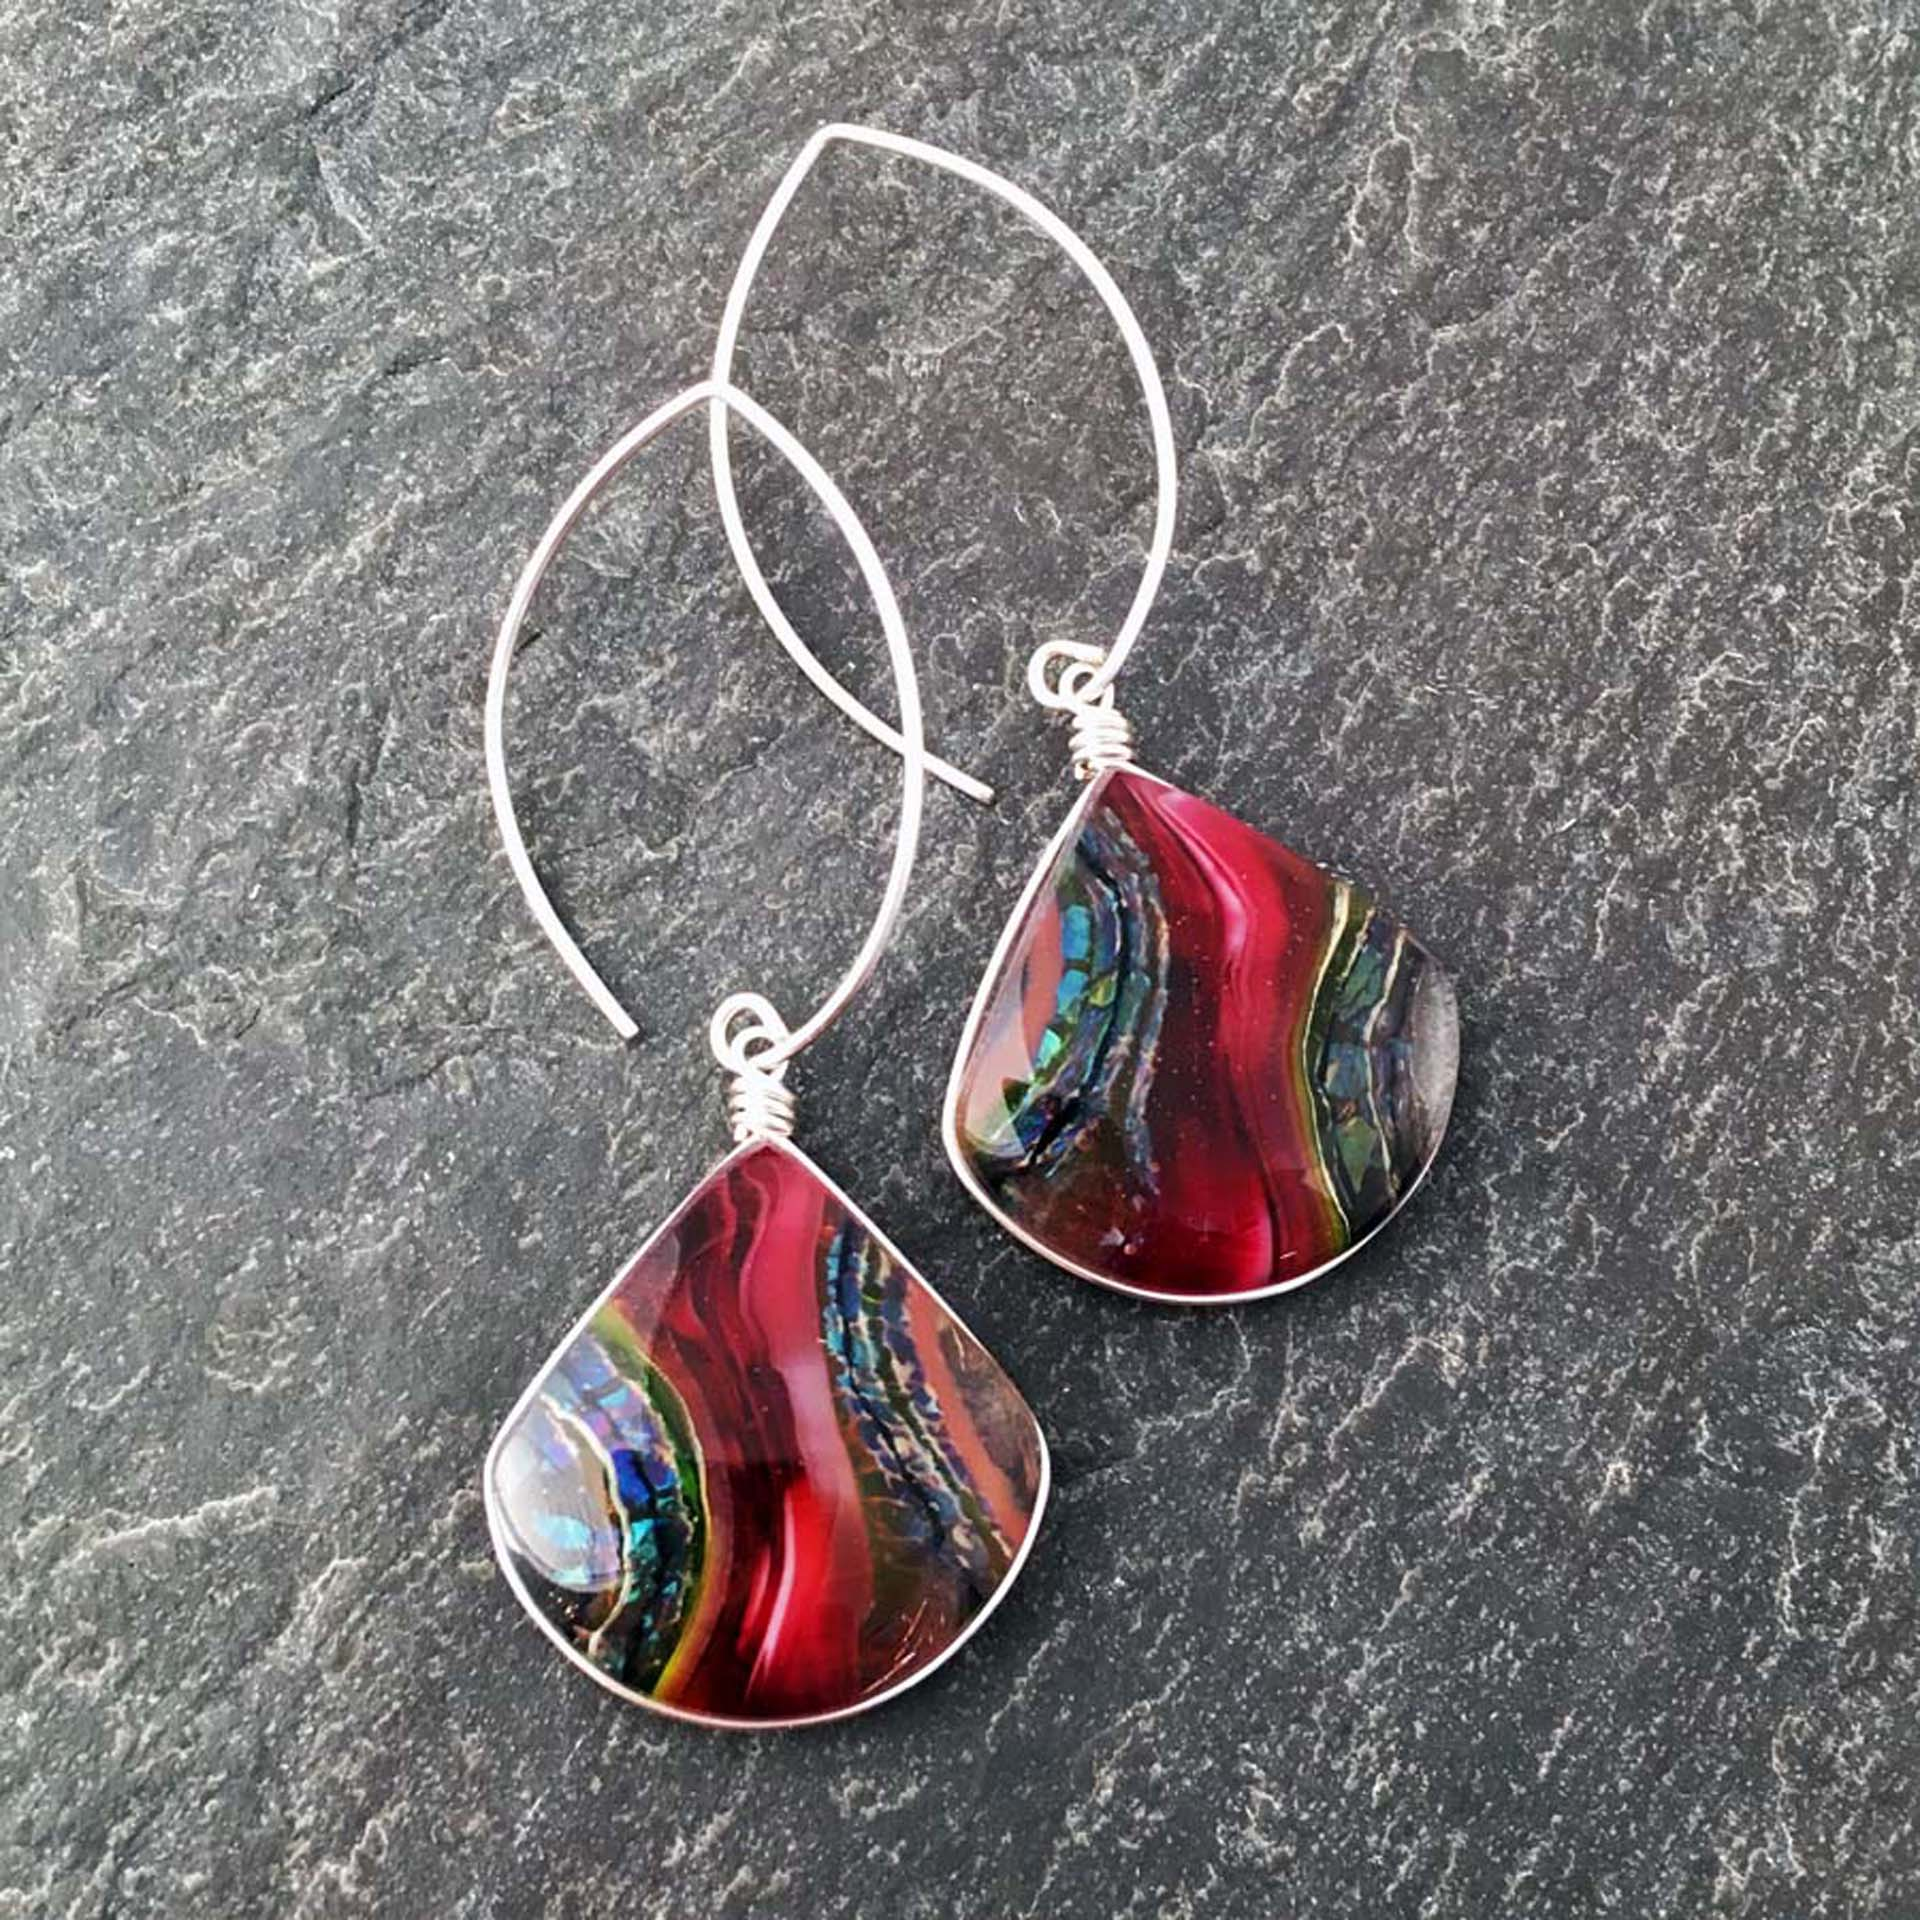 """4. Cranberry Stone Design Earrings, kiln formed art glass, 1"""" x 2.5"""" x .25"""", Earrings, Argentium sterling silver wire setting and ear wires, $67.00."""